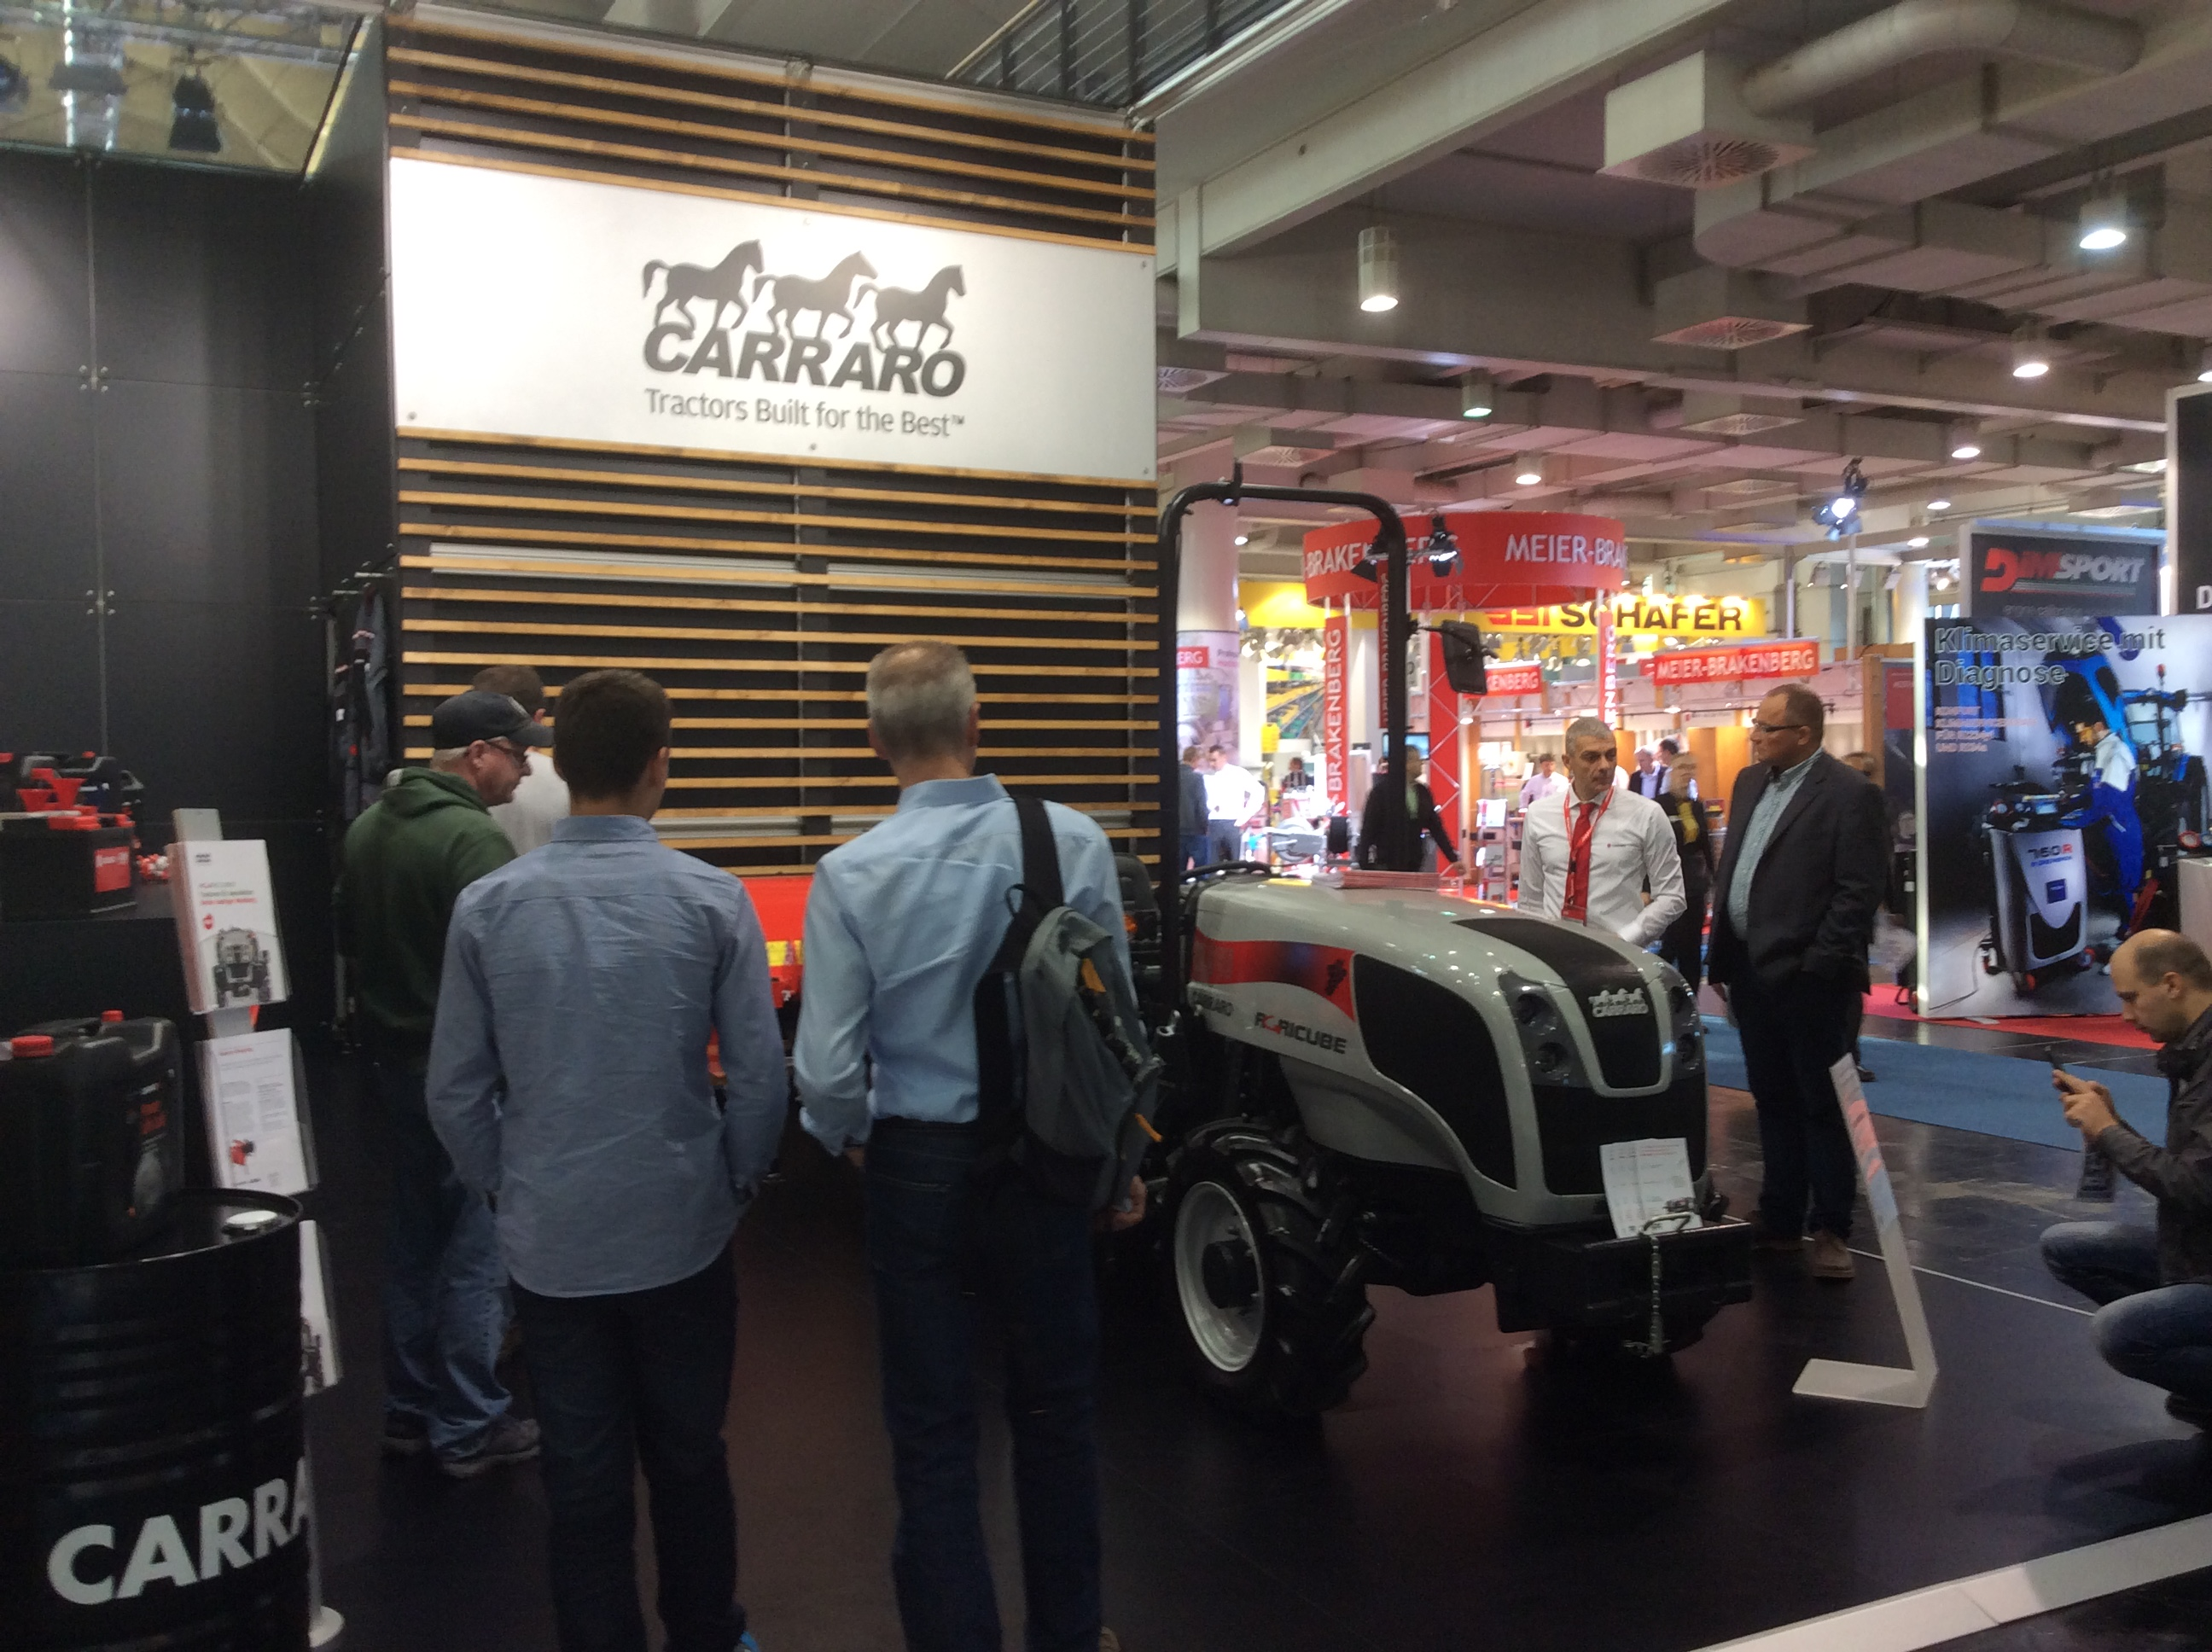 At Carraro Spare Parts & Carraro Tractors booth (Hall 2, Booth C10) you win!